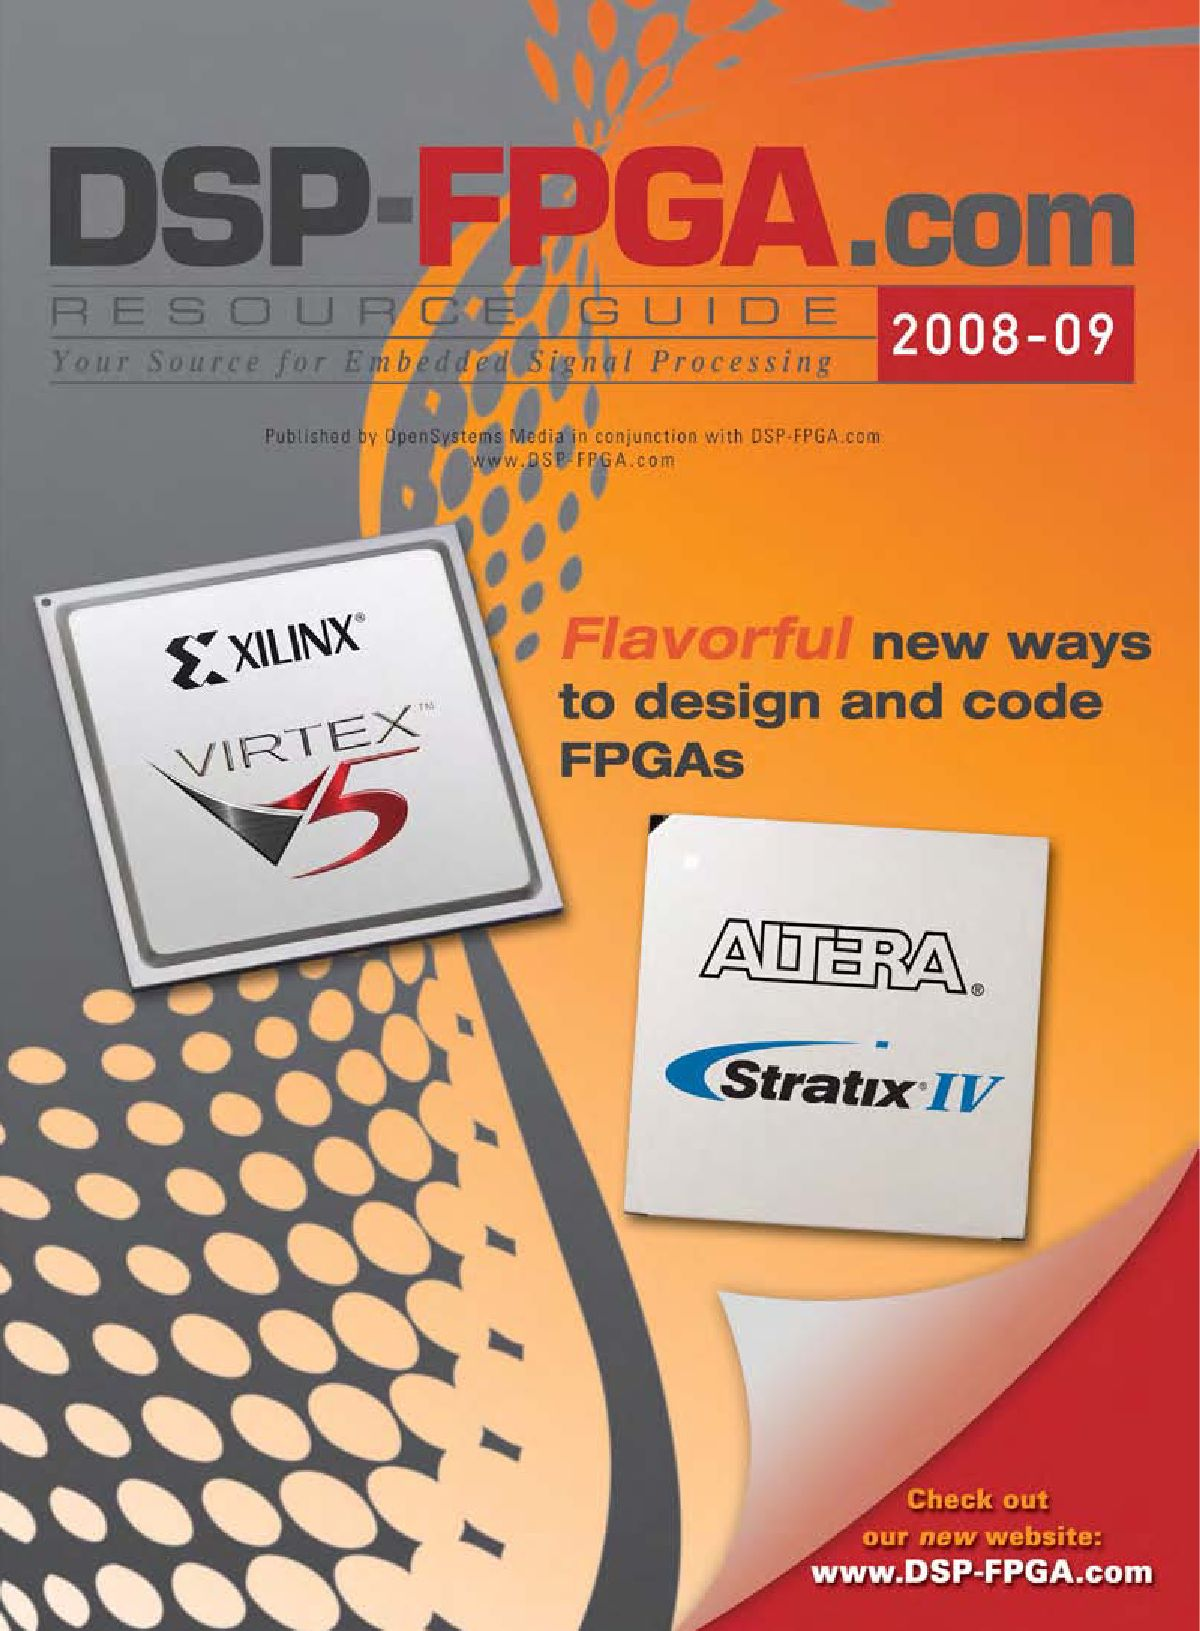 Dps Fpga 2008 2009 Resource Guide By Kwitte Issuu Wiring Diagram For 3 Speed Fan Motor Fx2 75x